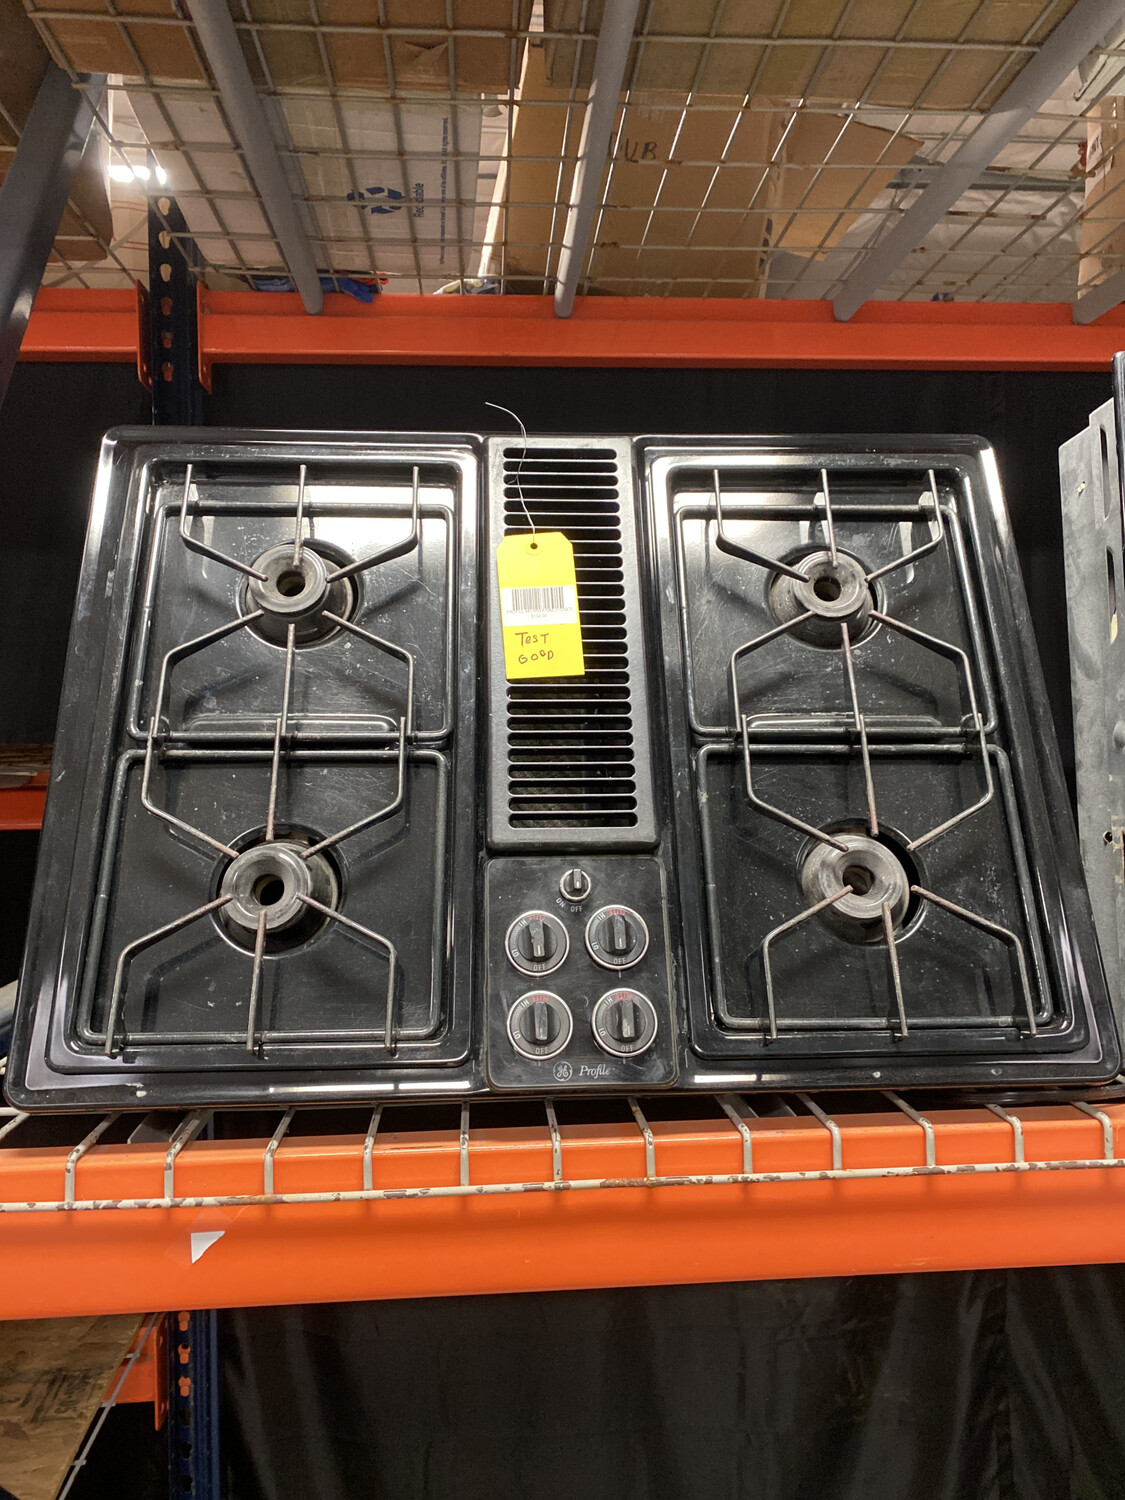 GE PROFILE 4BURNER GAS STOVETOP